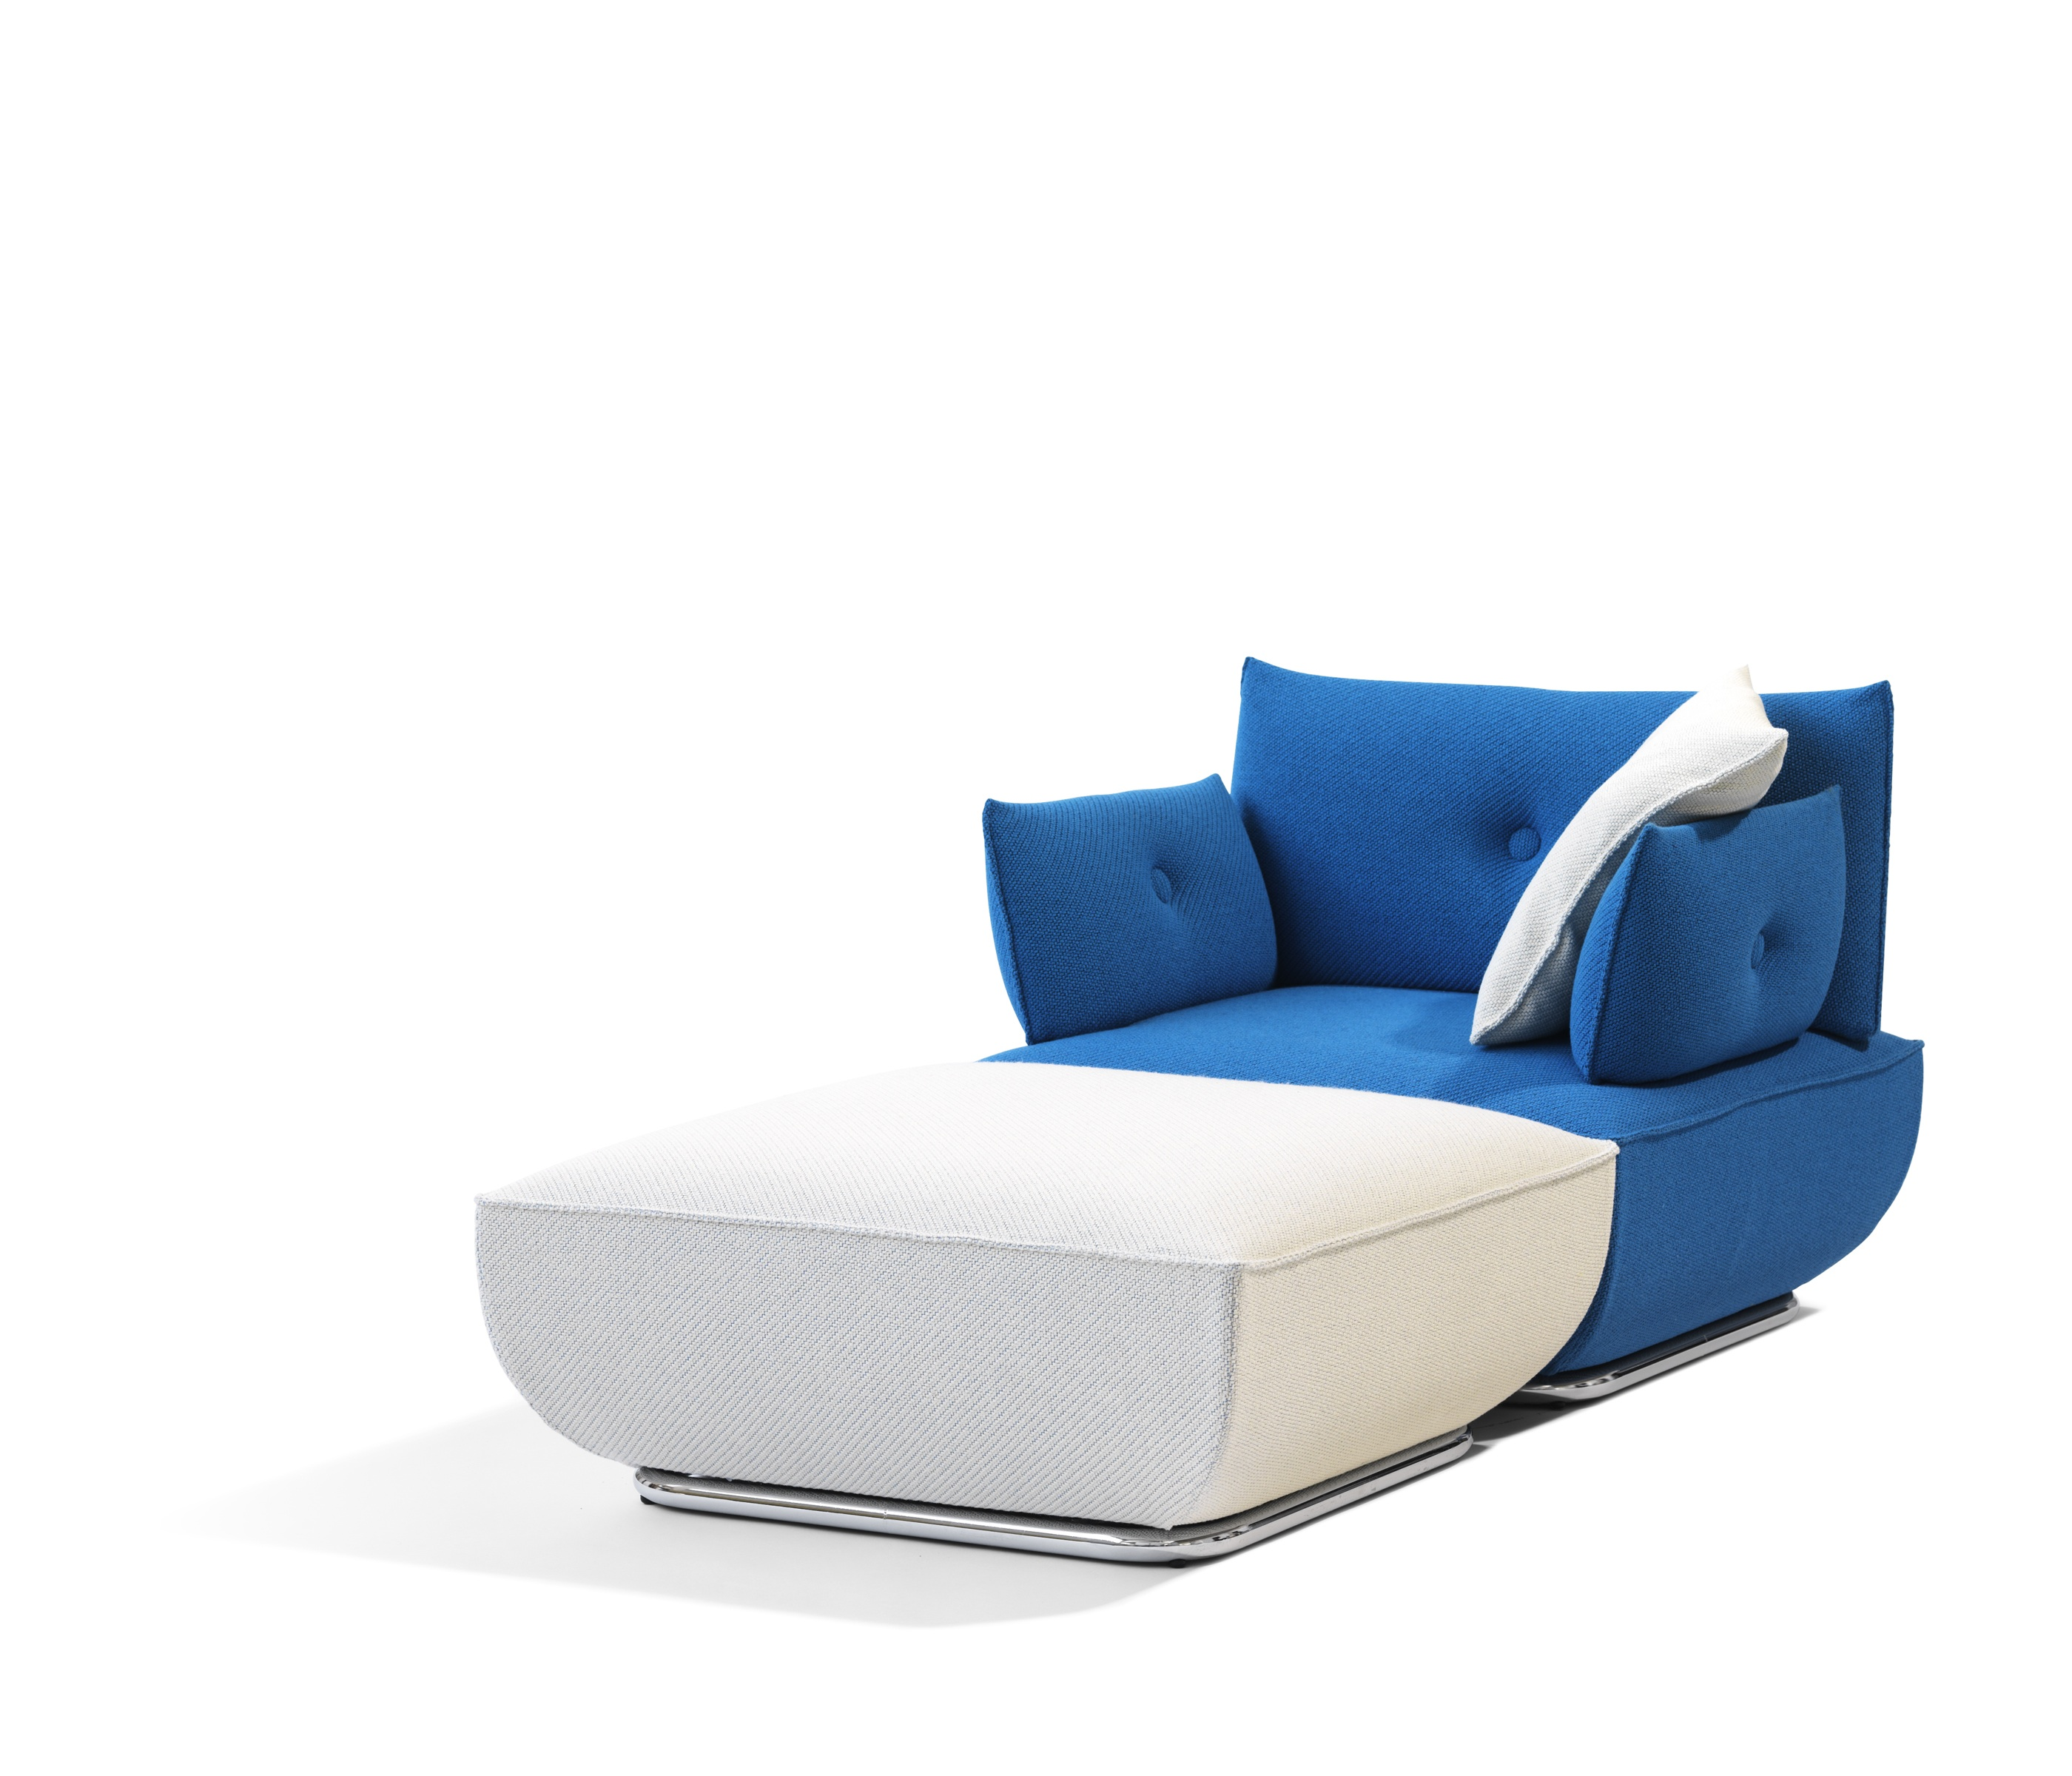 Modern Modular Sofa And Armchair With Flexible Design From Bl Station Digsdigs